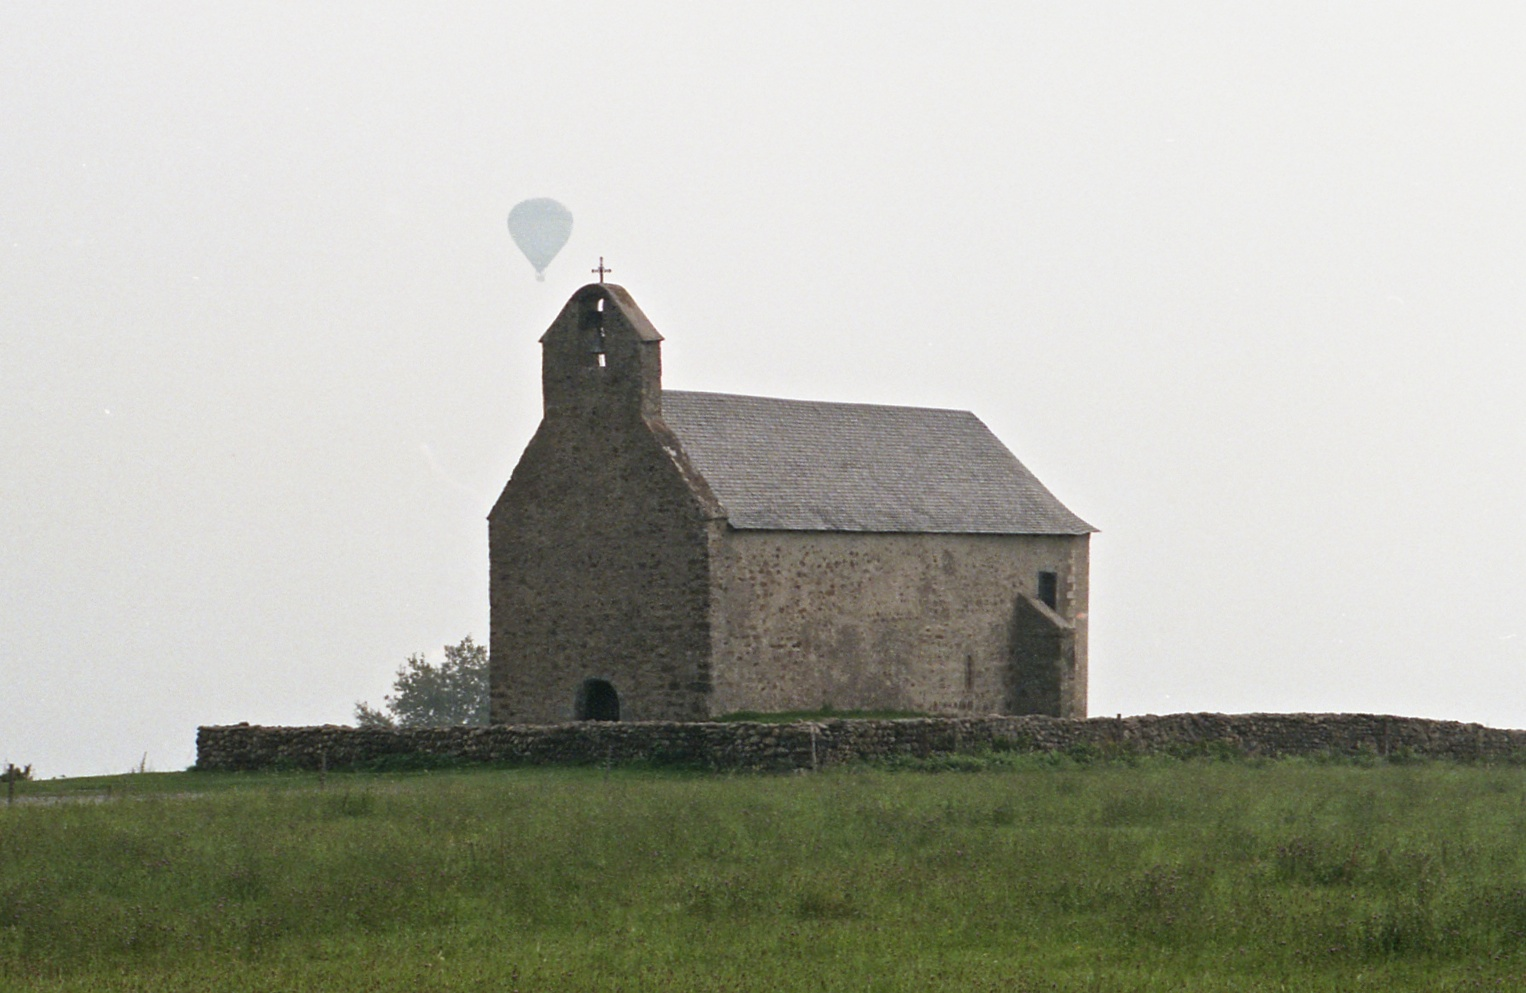 CHURCH AND BALLOON